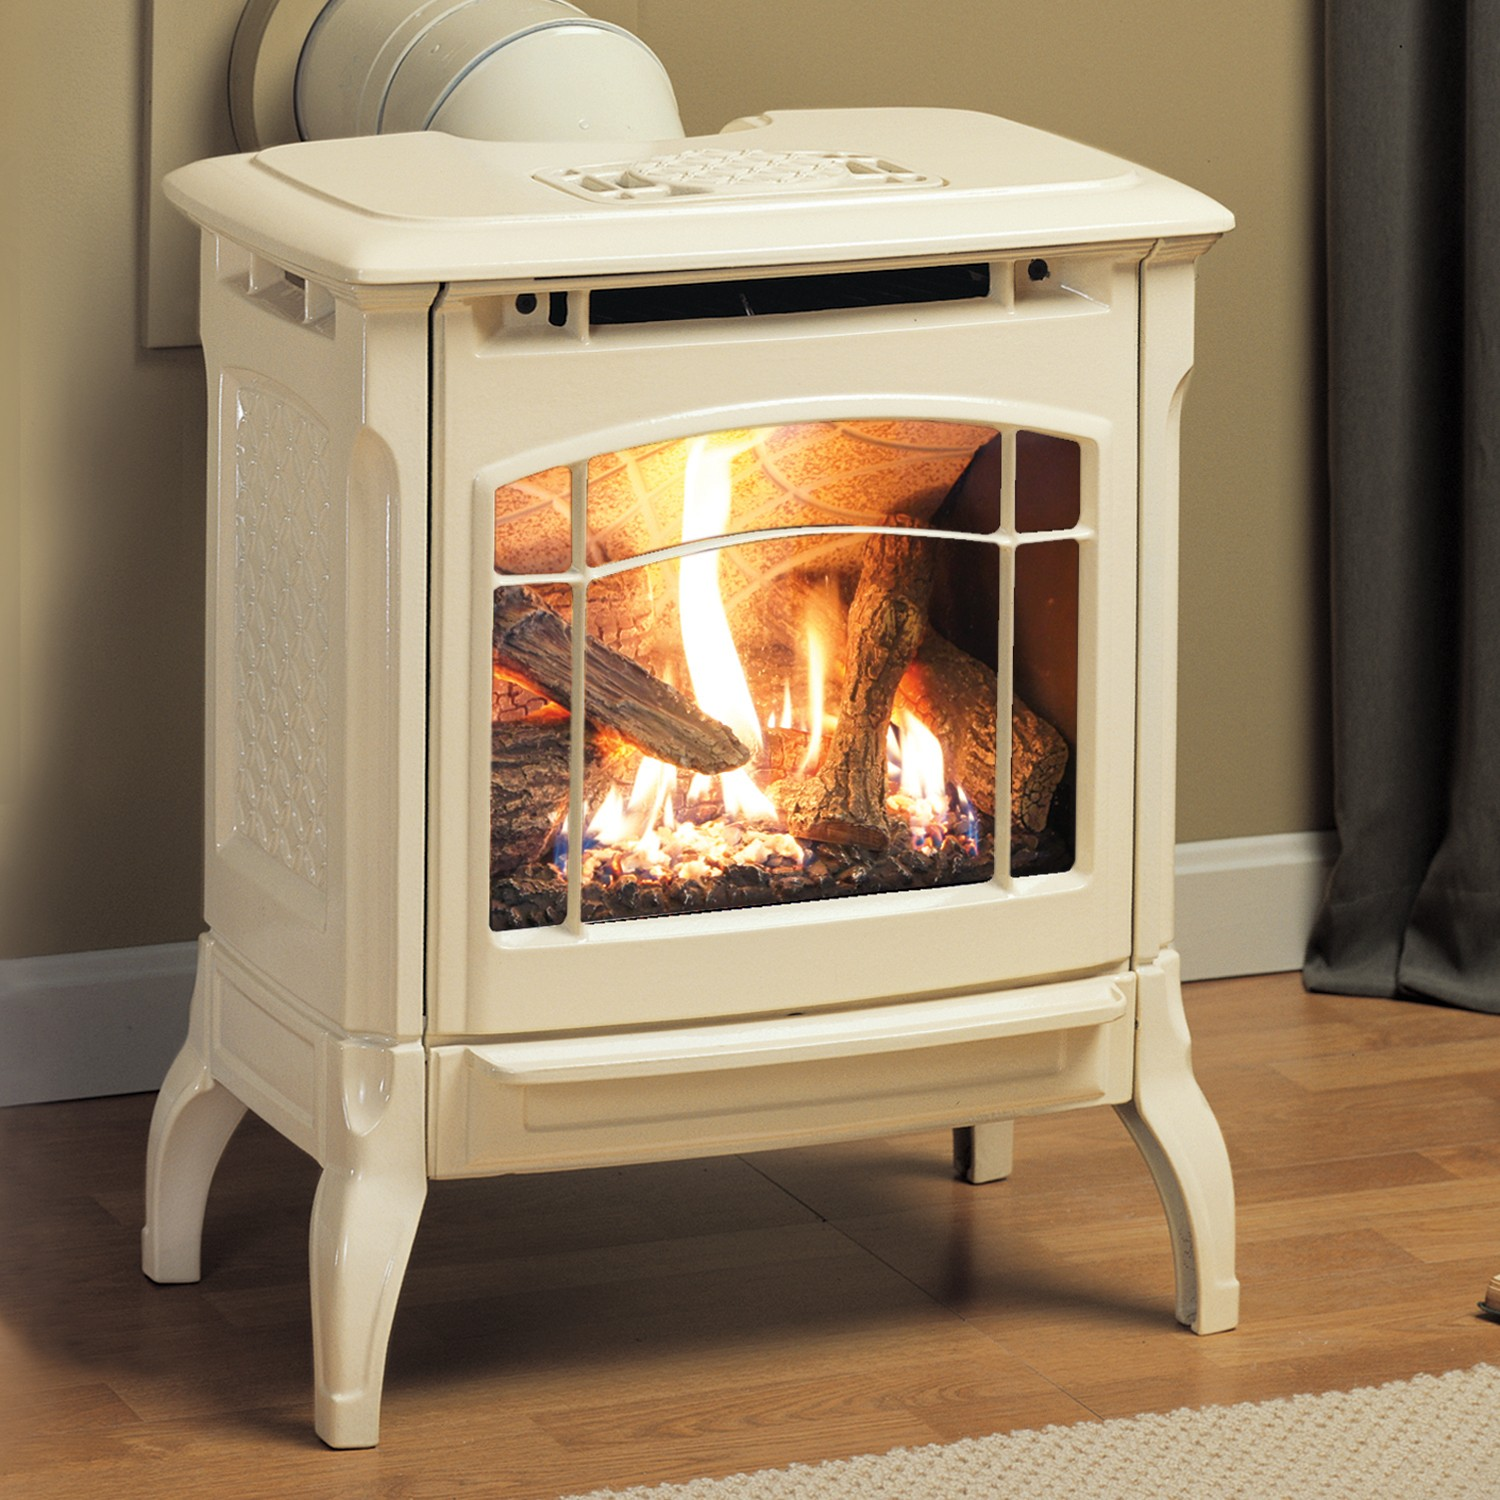 Small gas stove fireplace fireplace design ideas for Small fireplace ideas